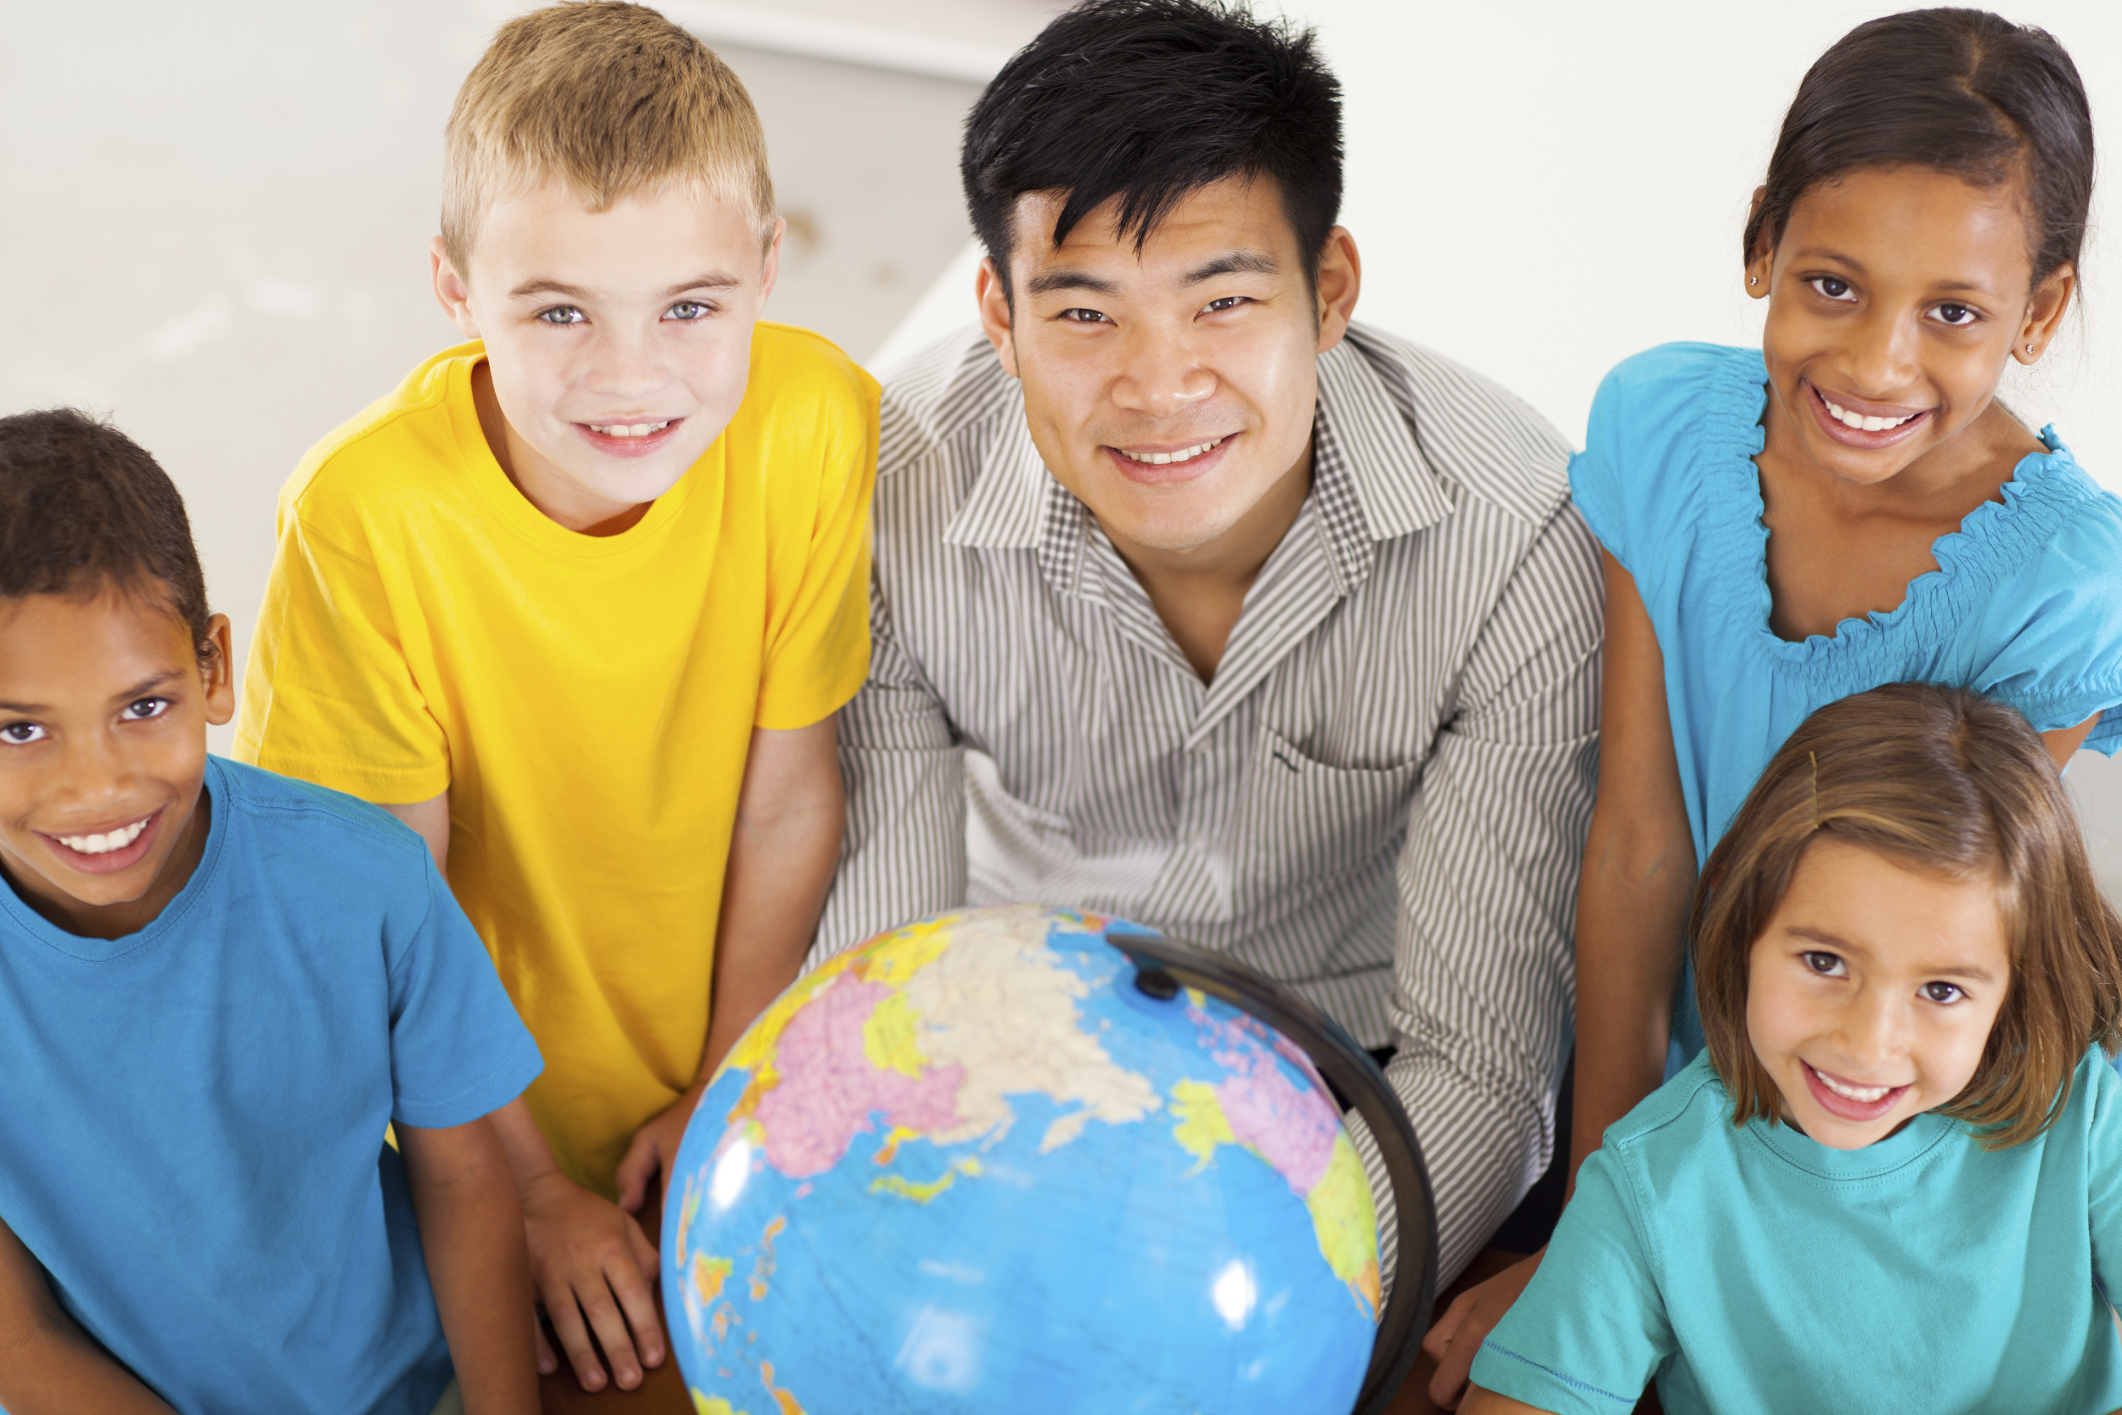 CAL Solutions - CAL Solutions specializes in effective, research-based solutions for language learners of all ages. For over 60 years, CAL has worked with teachers, administrators, practitioners, service providers, and others committed to helping language learners succeed.